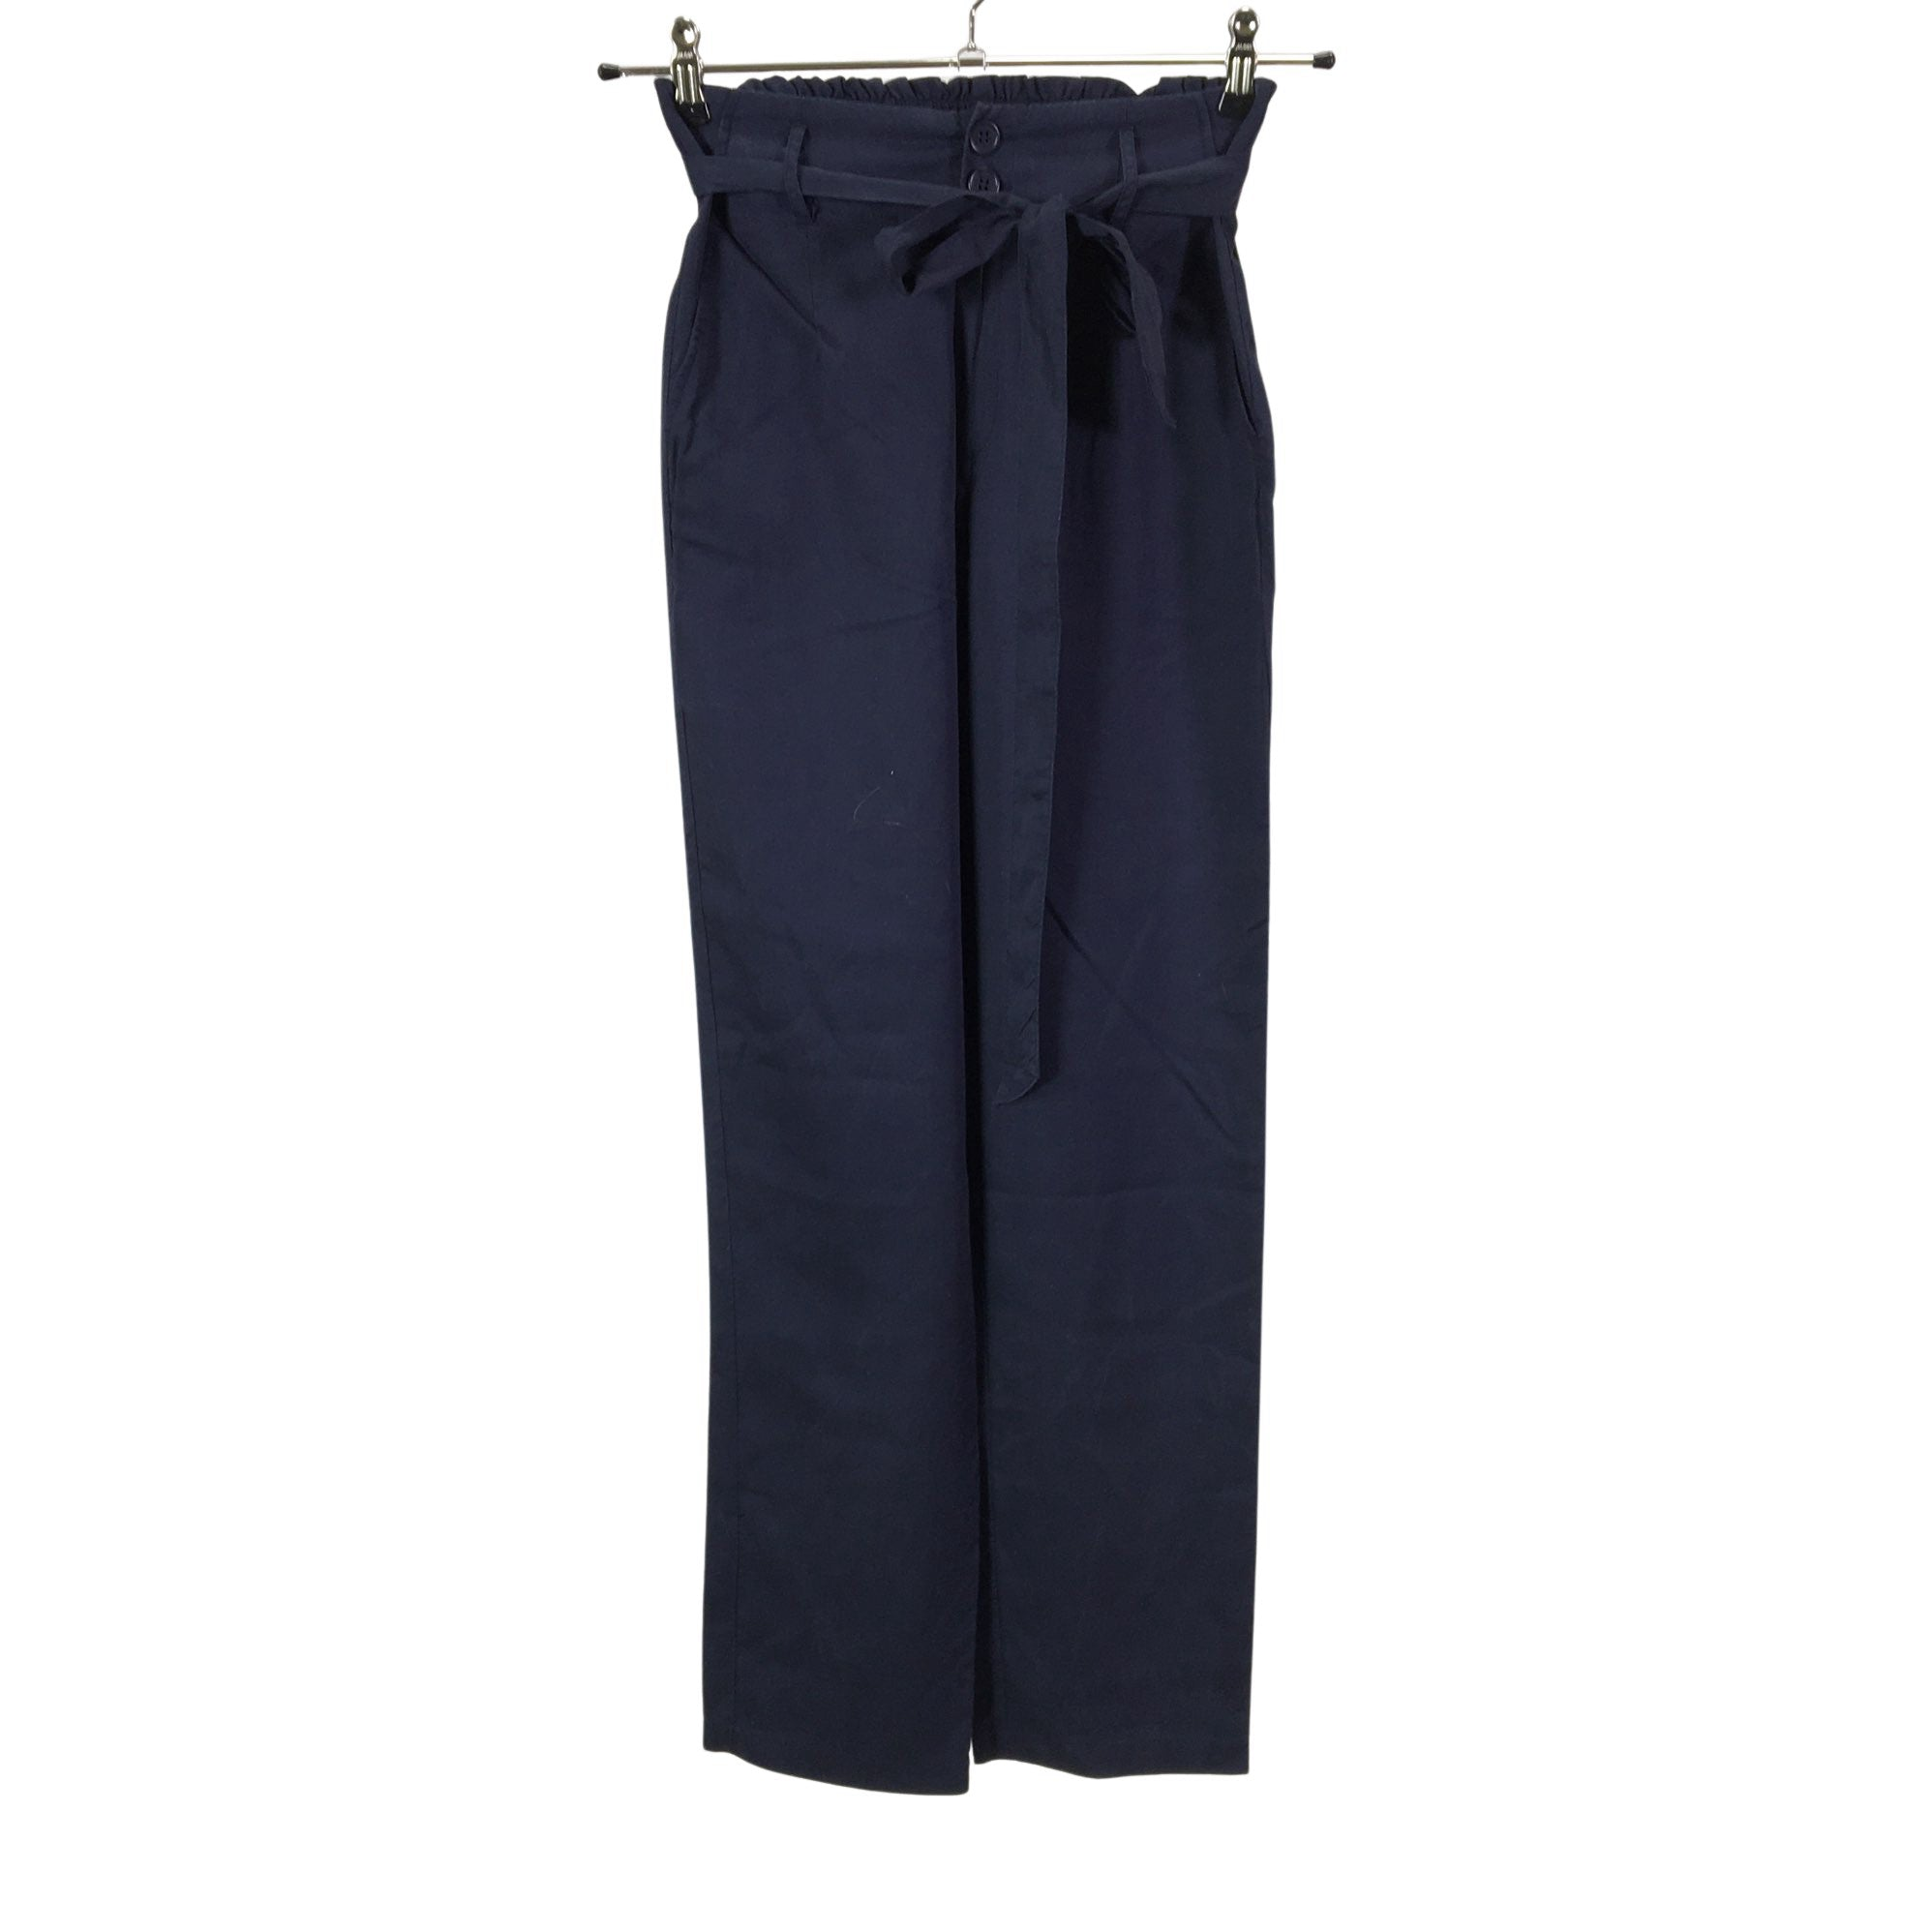 Schiffon trousers, size 34 © Emmy Clothing Company Oy